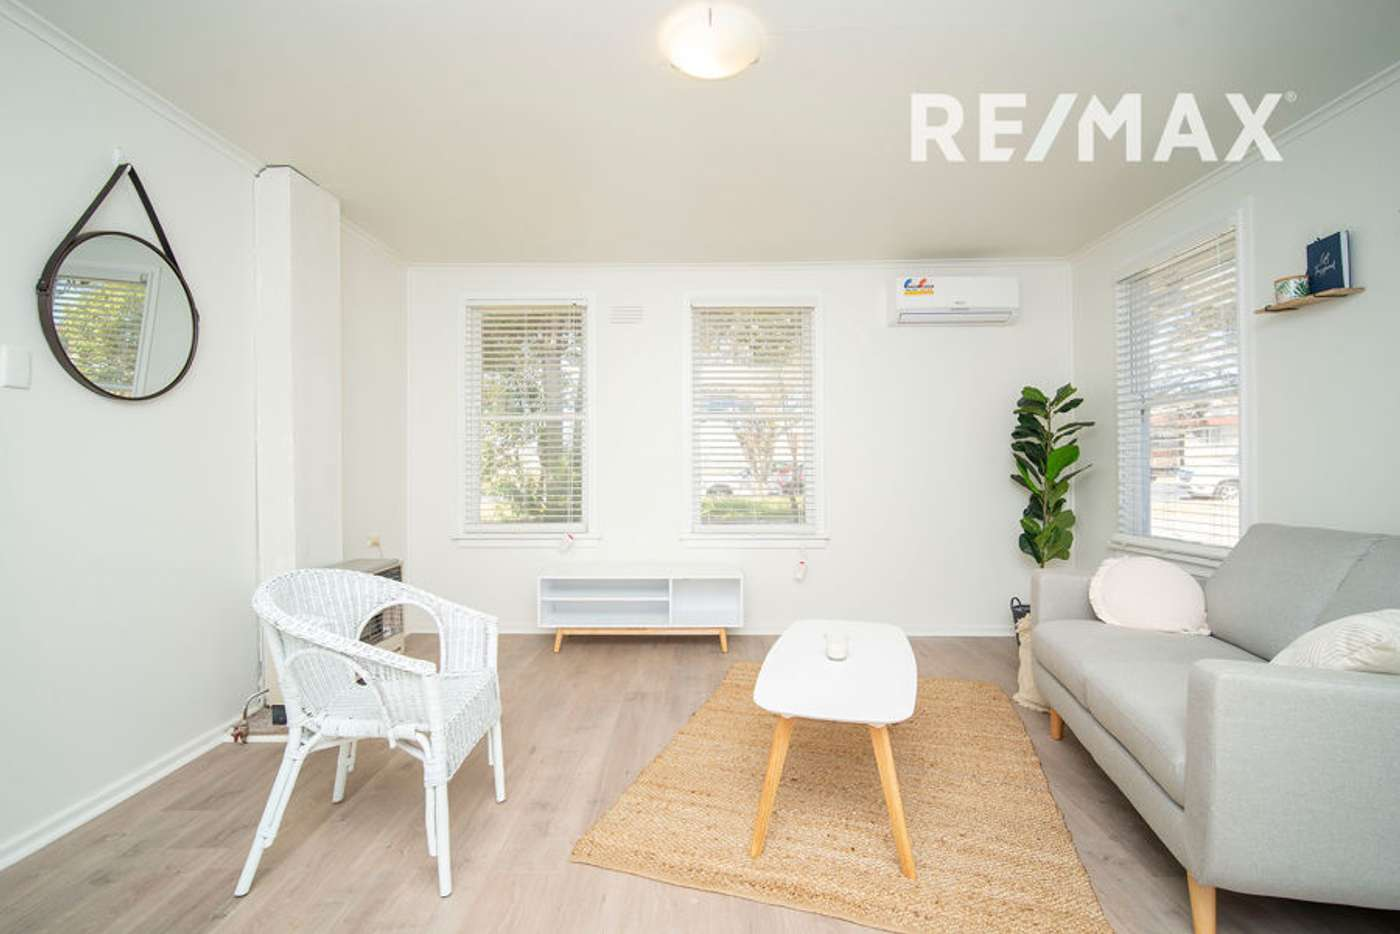 Fifth view of Homely house listing, 185 Fernleigh Road, Ashmont NSW 2650